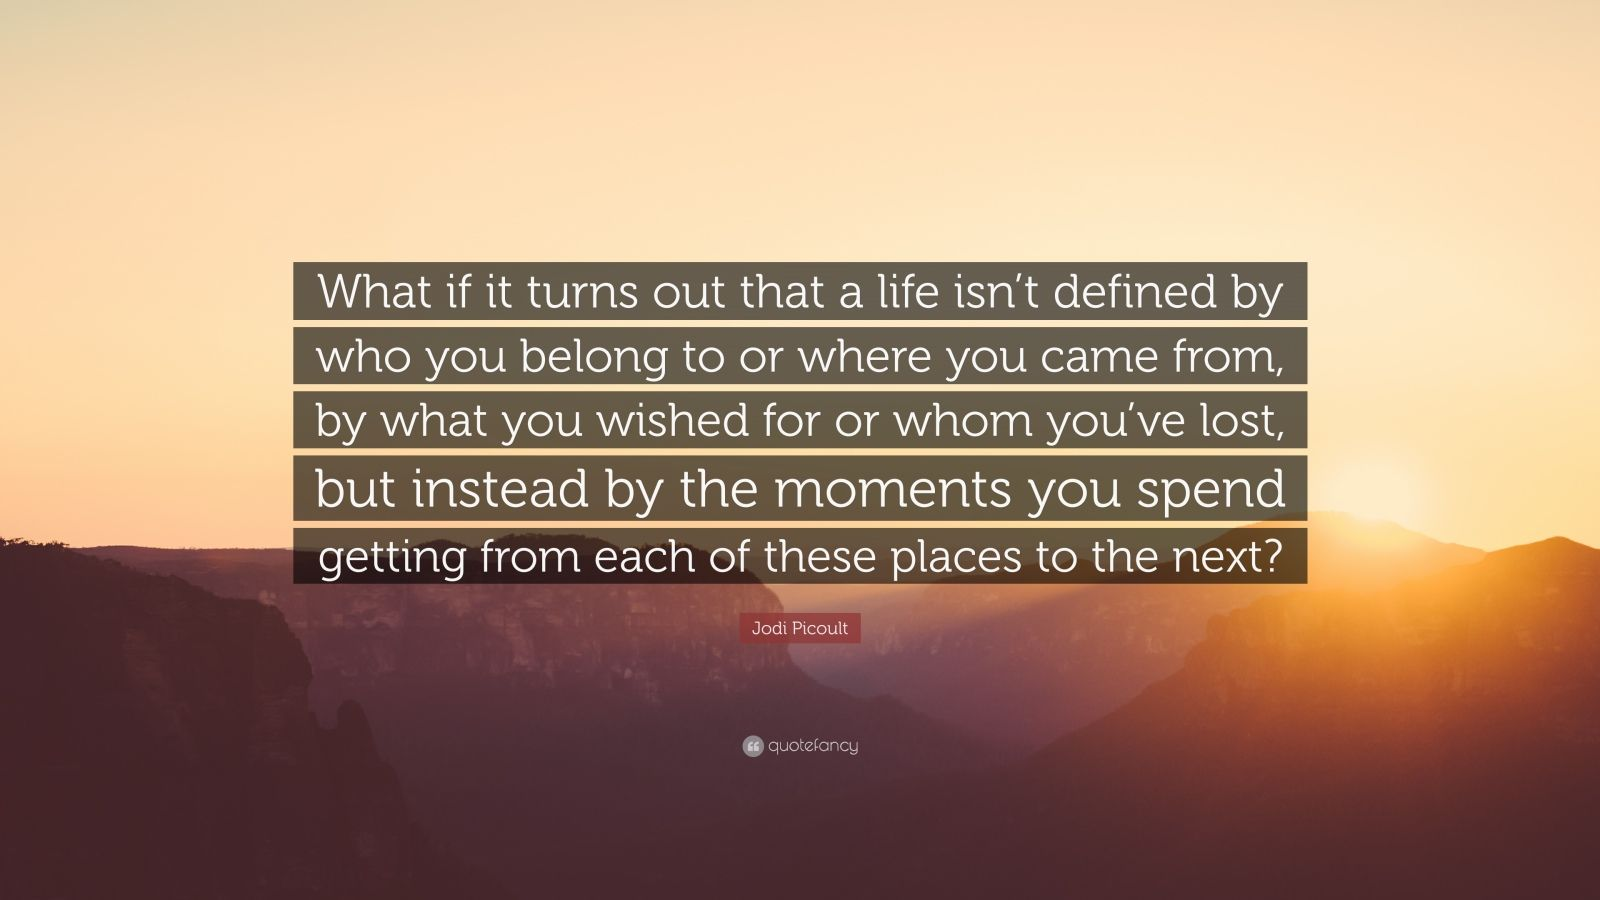 "Jodi Picoult Quote: ""What if it turns out that a life isn't defined by who you belong to or where you came from, by what you wished for or whom you've lost, but instead by the moments you spend getting from each of these places to the next?"""